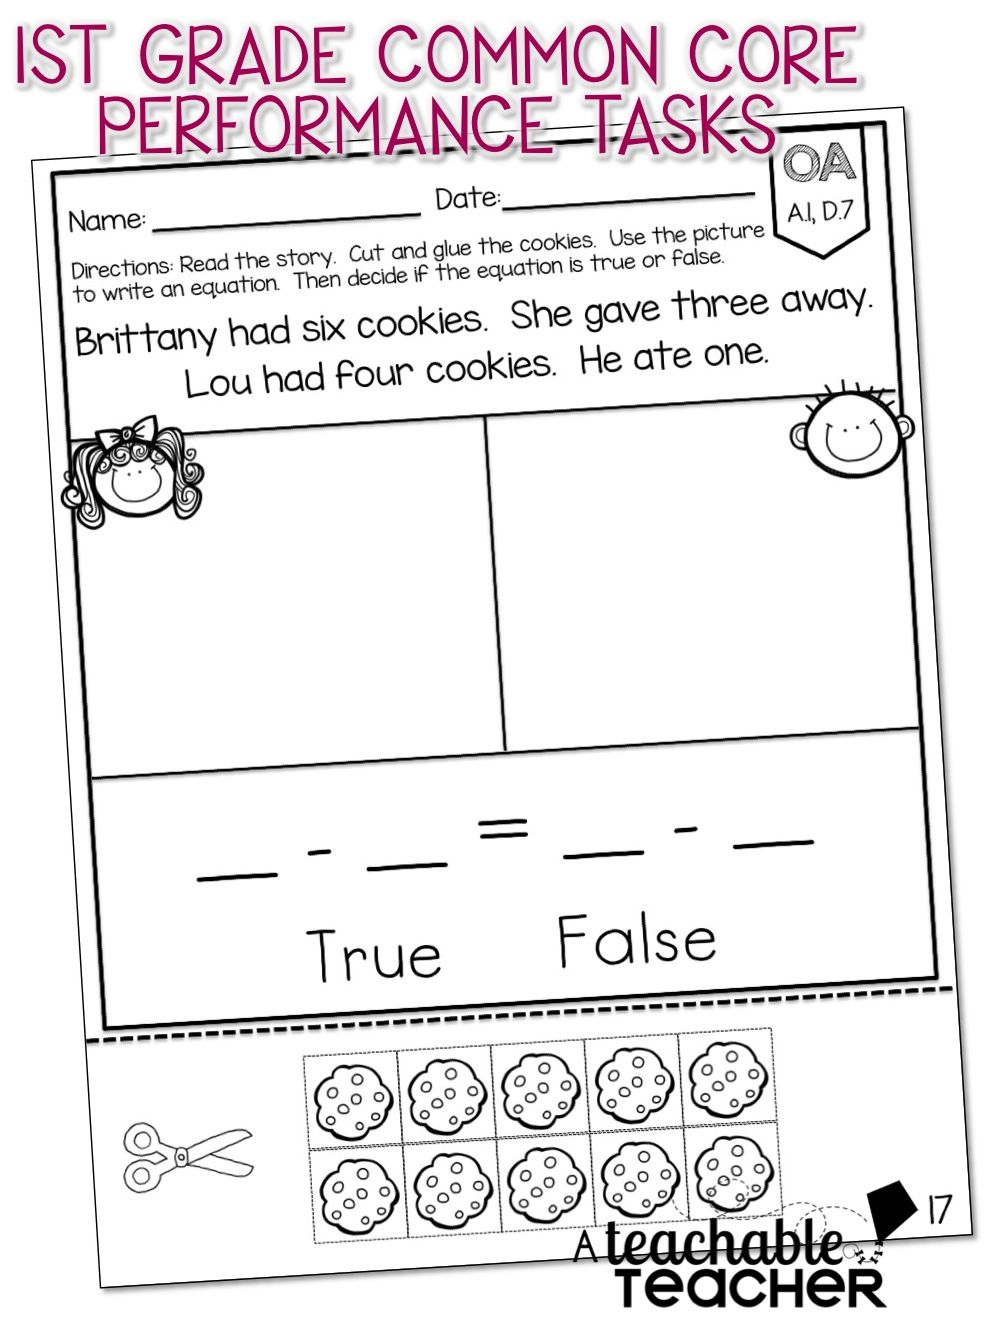 1st grade math worksheets Bing Images First grade math